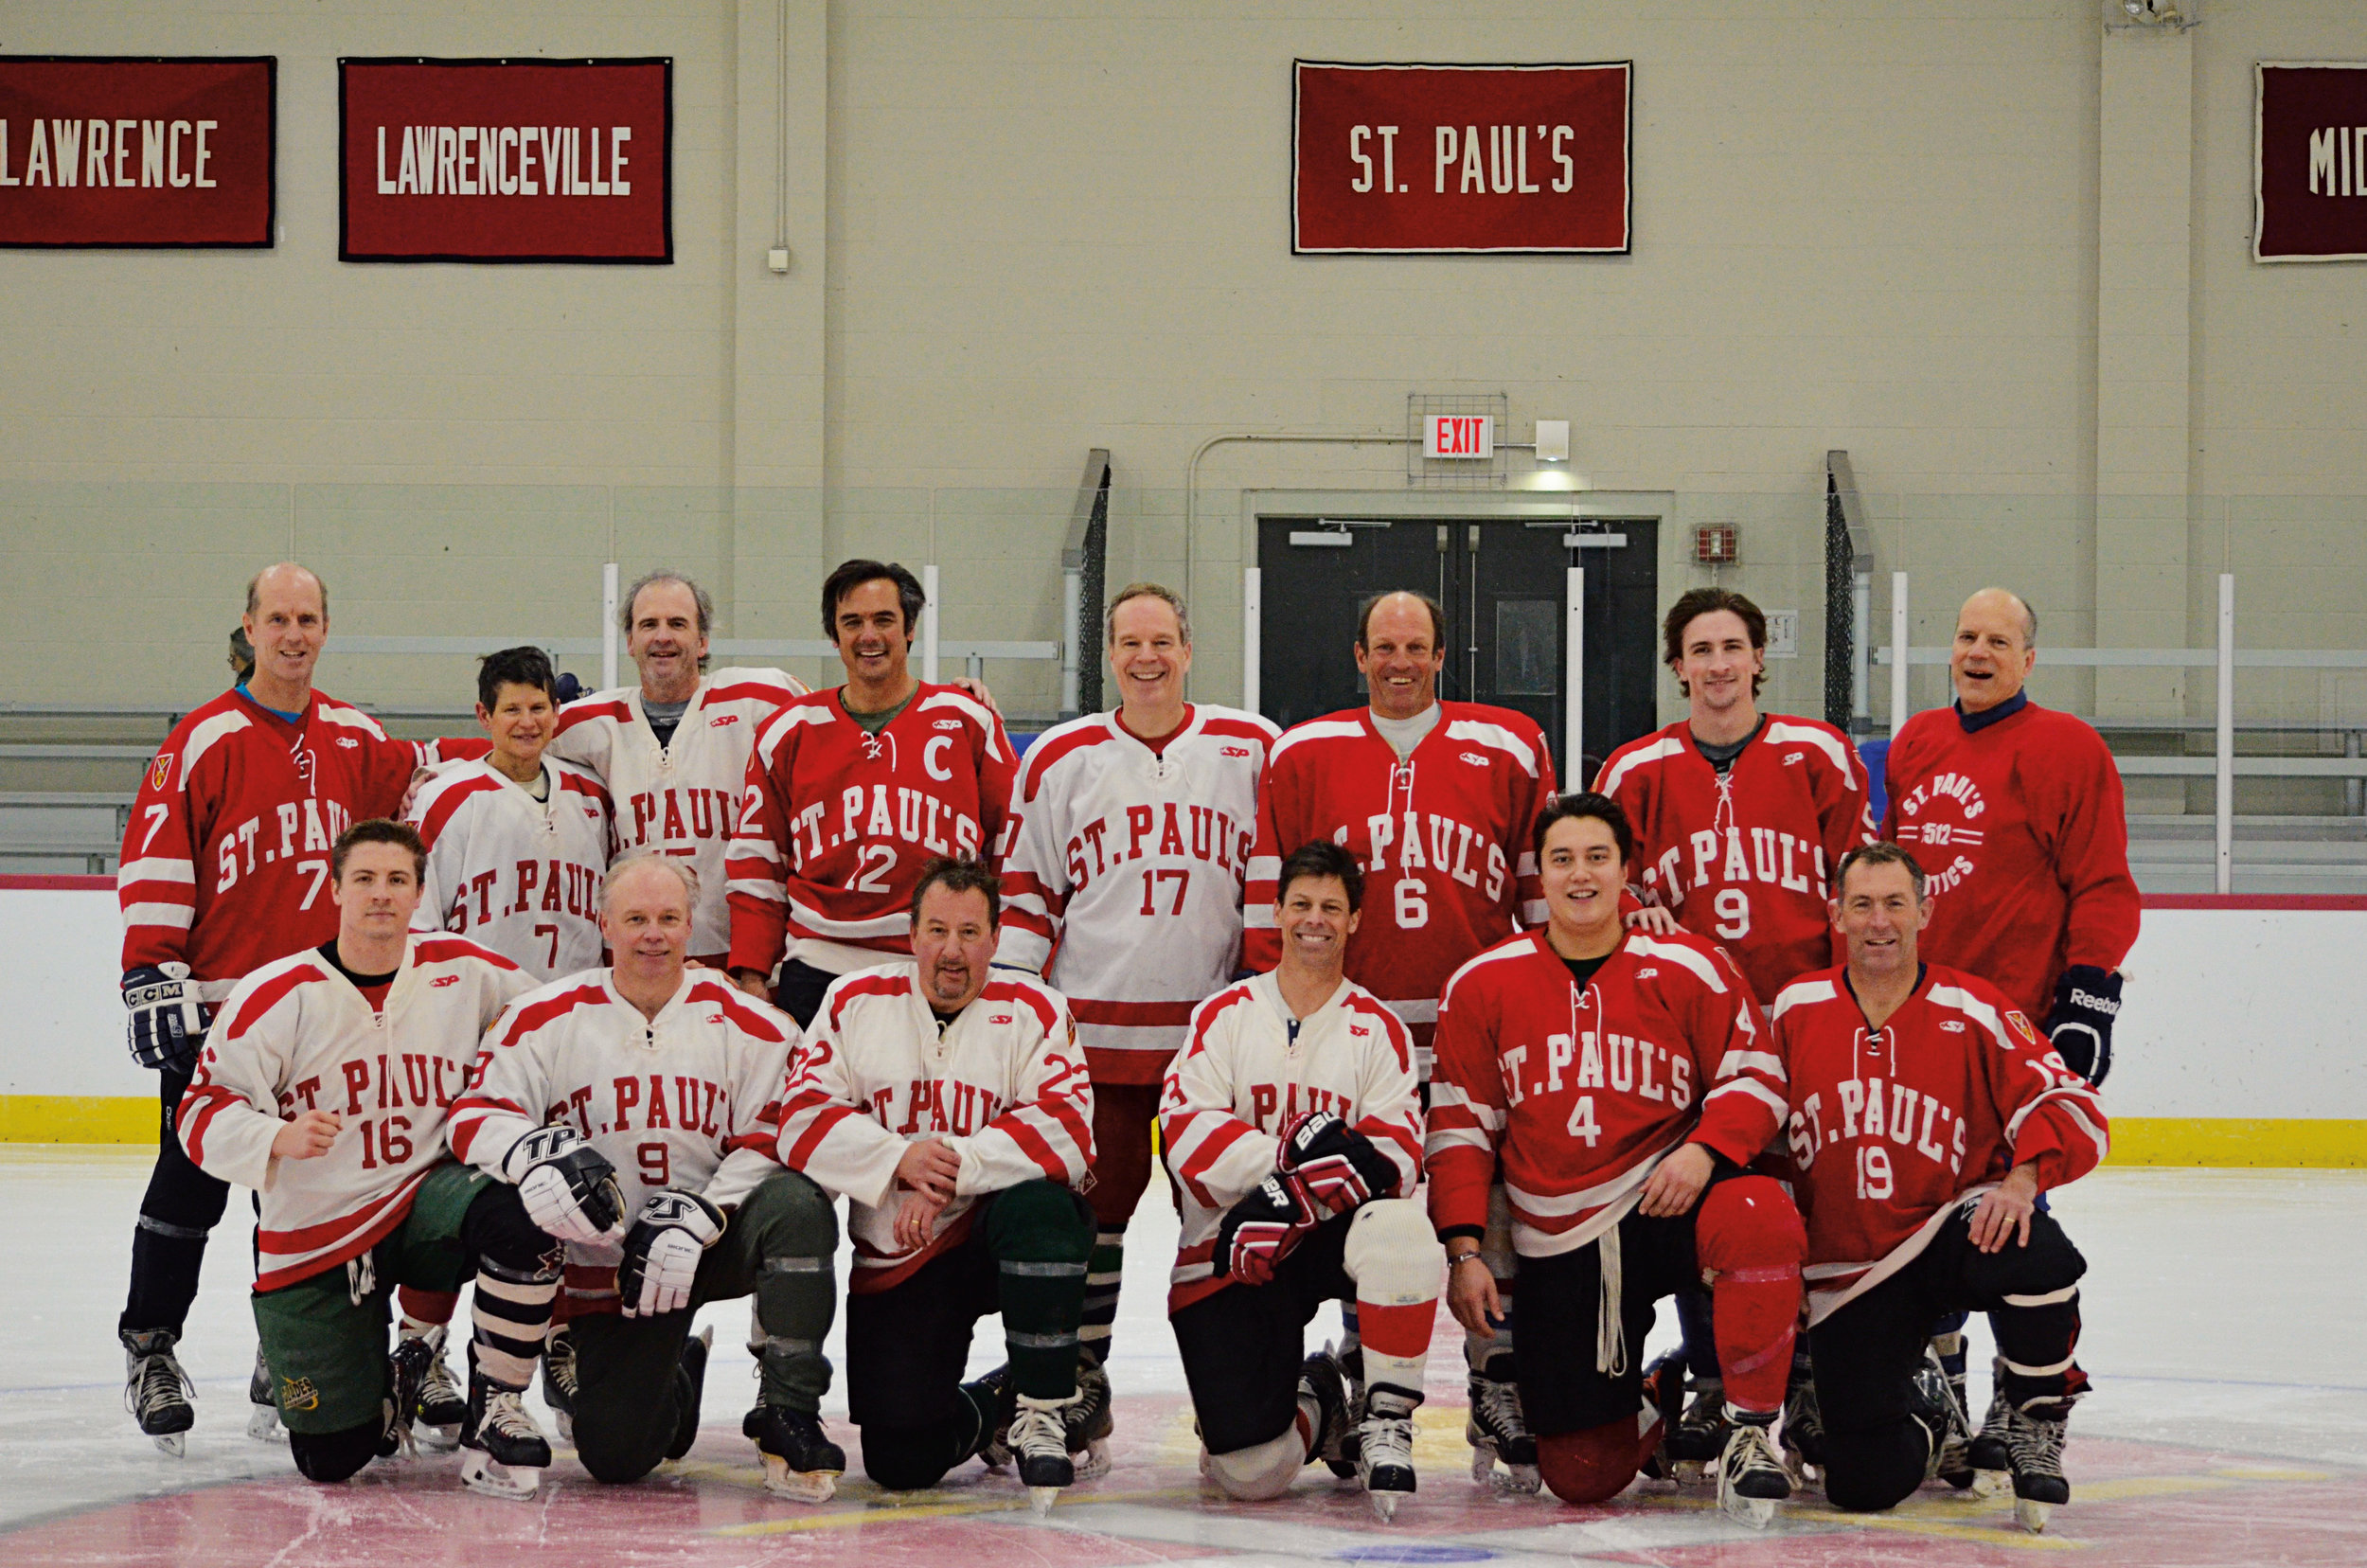 "Alumni Hockey Game players, standing (l. to r.): John Potter '85, Elisabeth ""Wyz"" Mooney '78, Jon Old '78, John Bohan '83, Mason Wells '80, Clay Yonce '82, Colin ""Brodie"" McCusker '12, Terry Wardrop '78. Front (l. to r.): Cam McCusker '14, James Hornblower '82, Christopher King '82, Jim Barker '87, Sam Hudziak '12, and Bill Kessler '87. (Goalies, not pictured, were faculty members Scott Reynolds and Darik Velez ASP '96.)"